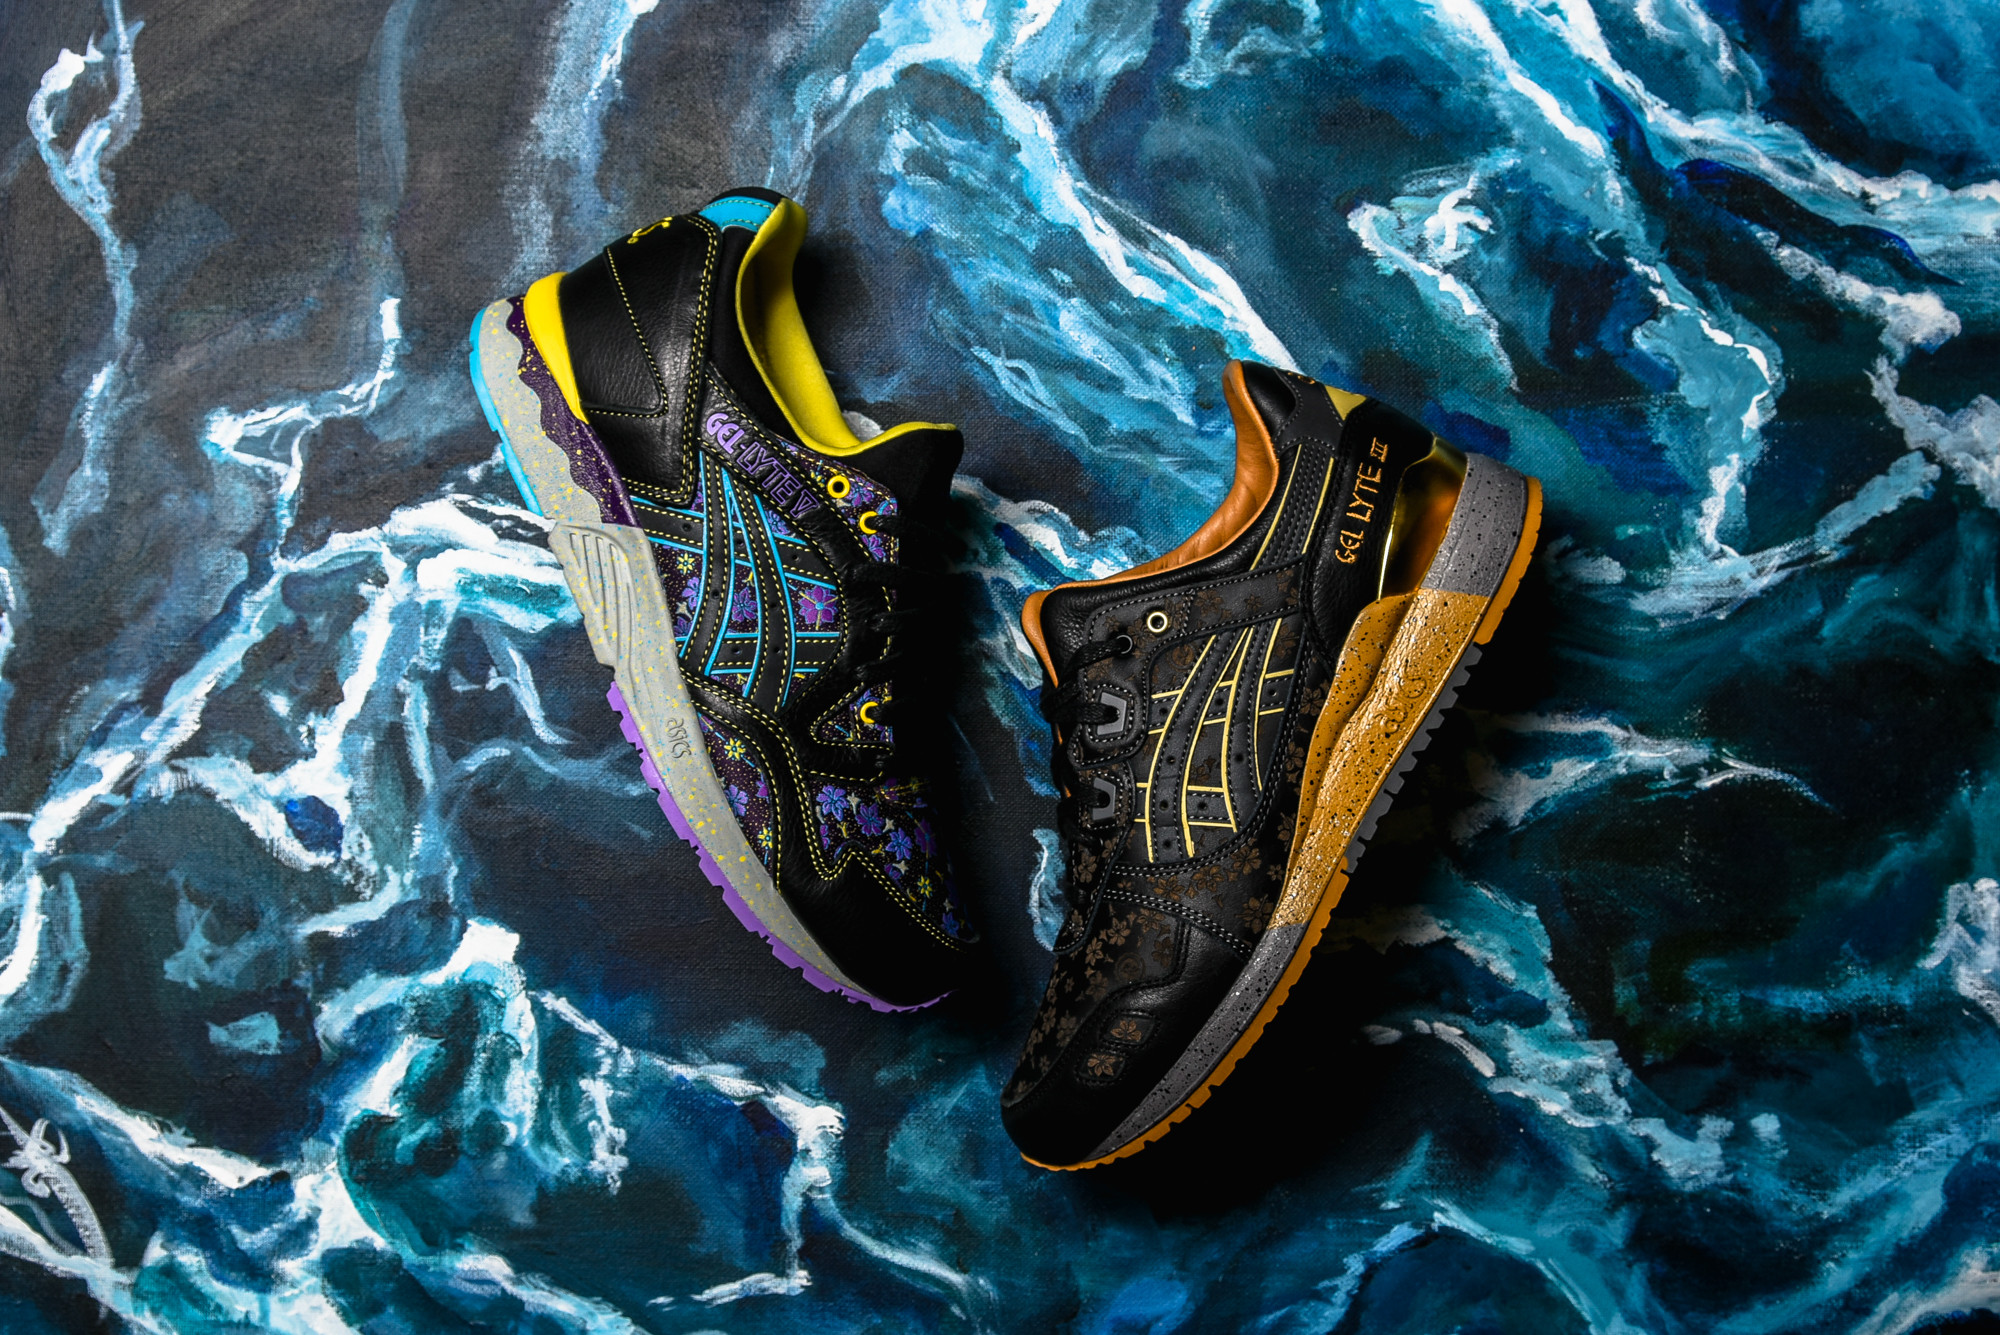 ASICS x The Limited Edt Gel-Lyte III Vanda Kuro 4